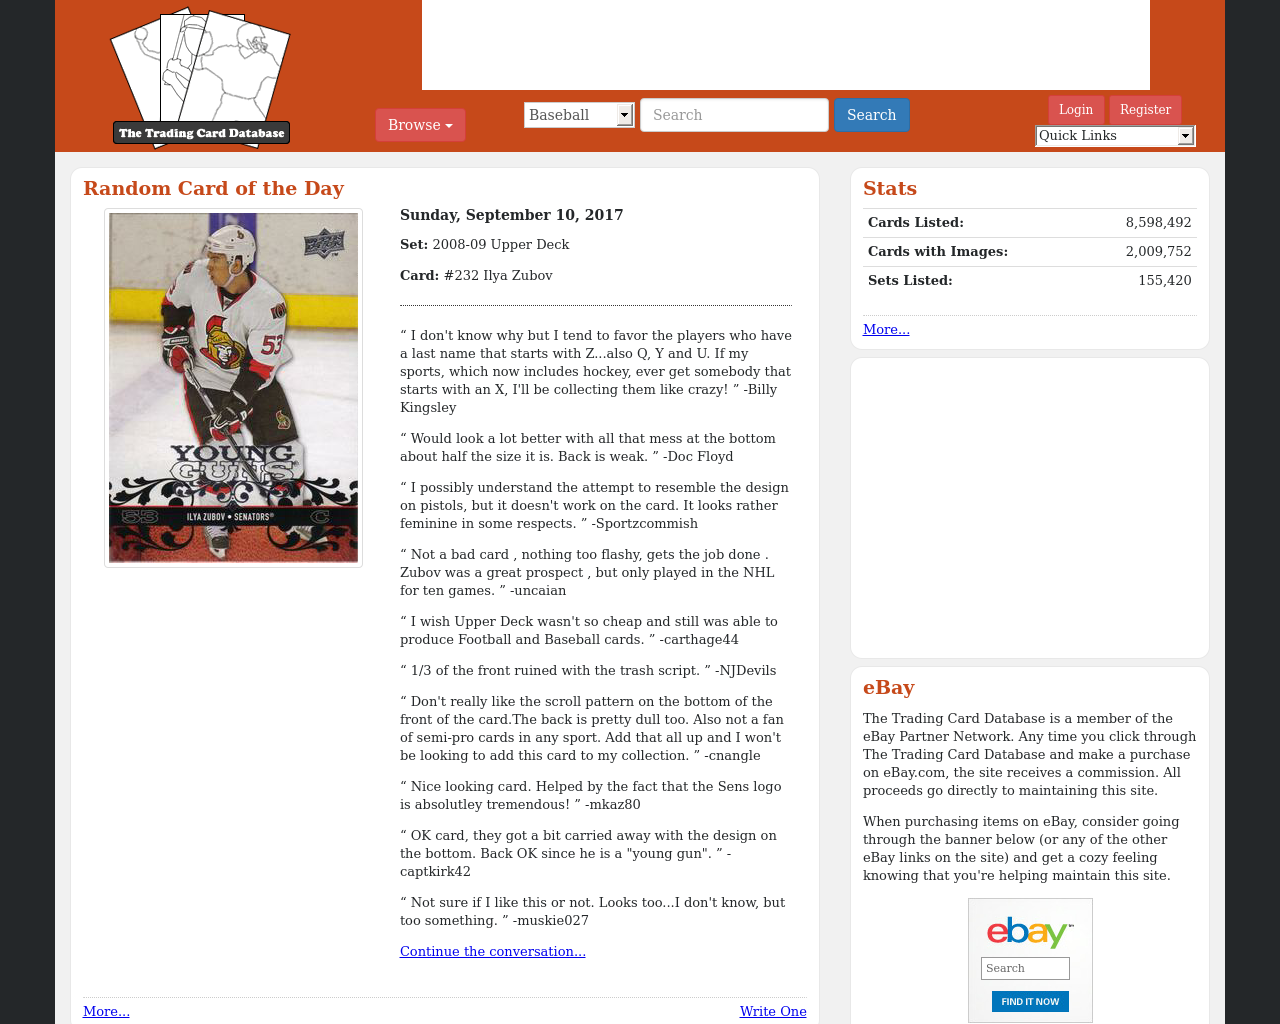 The-Trading-Card-Database-Advertising-Reviews-Pricing